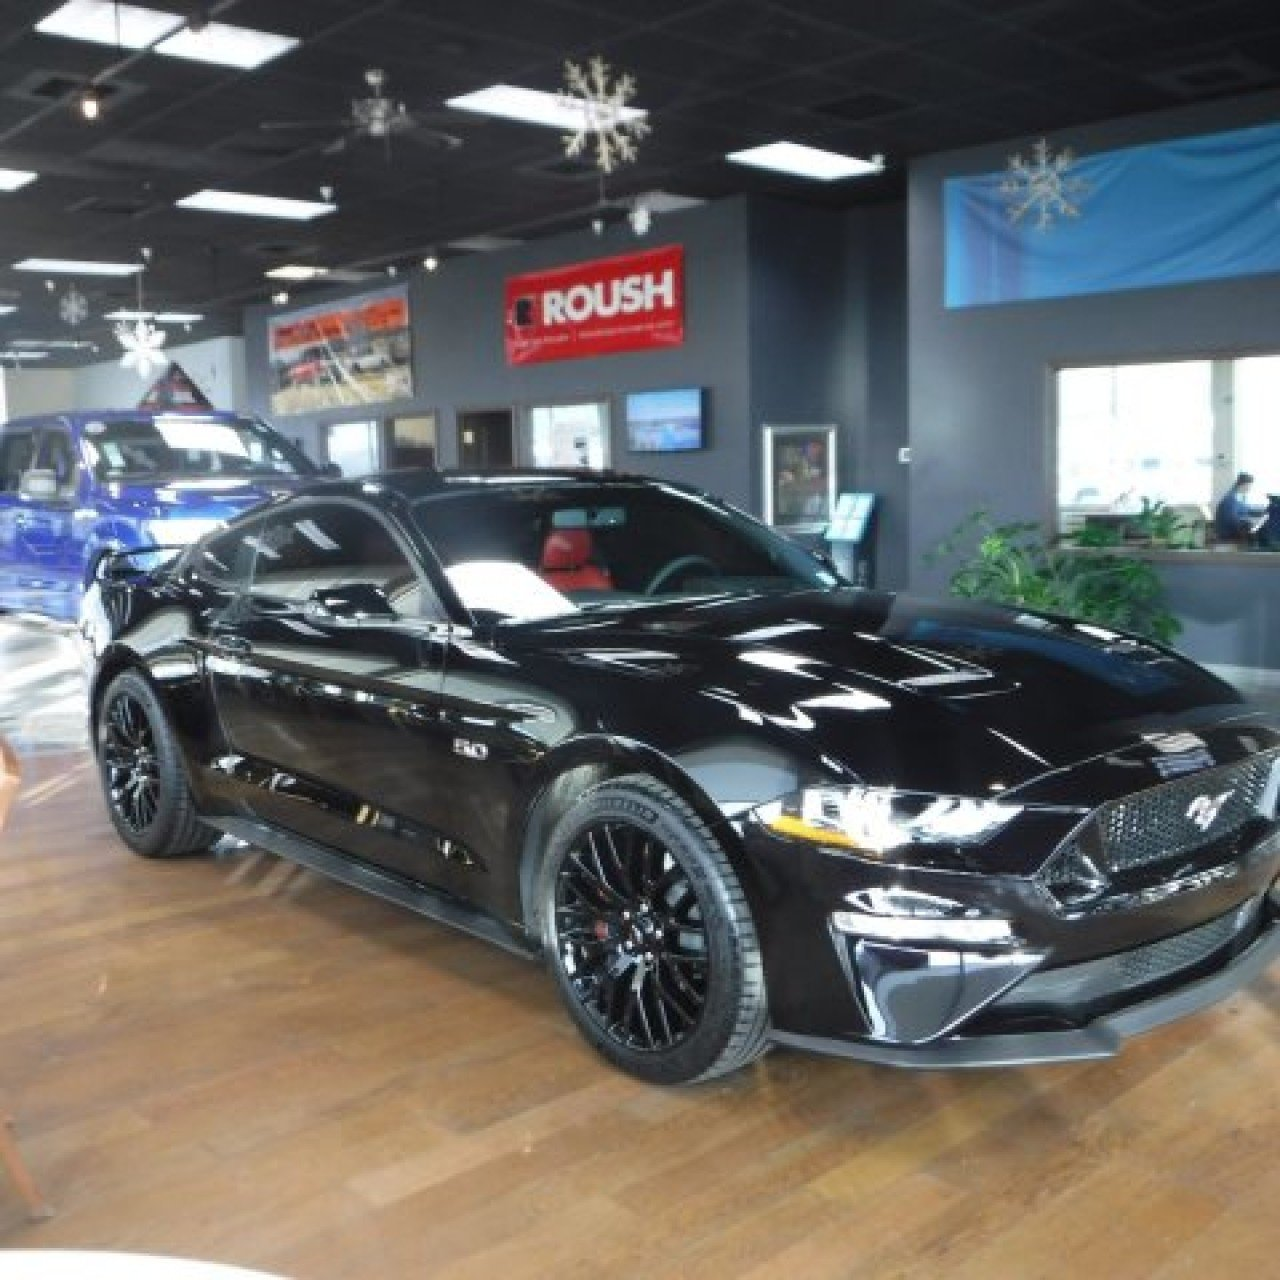 2018 Mustang Gt Pricing >> 2018 Ford Mustang Gt Coupe For Sale Near Twin Falls Idaho 83301